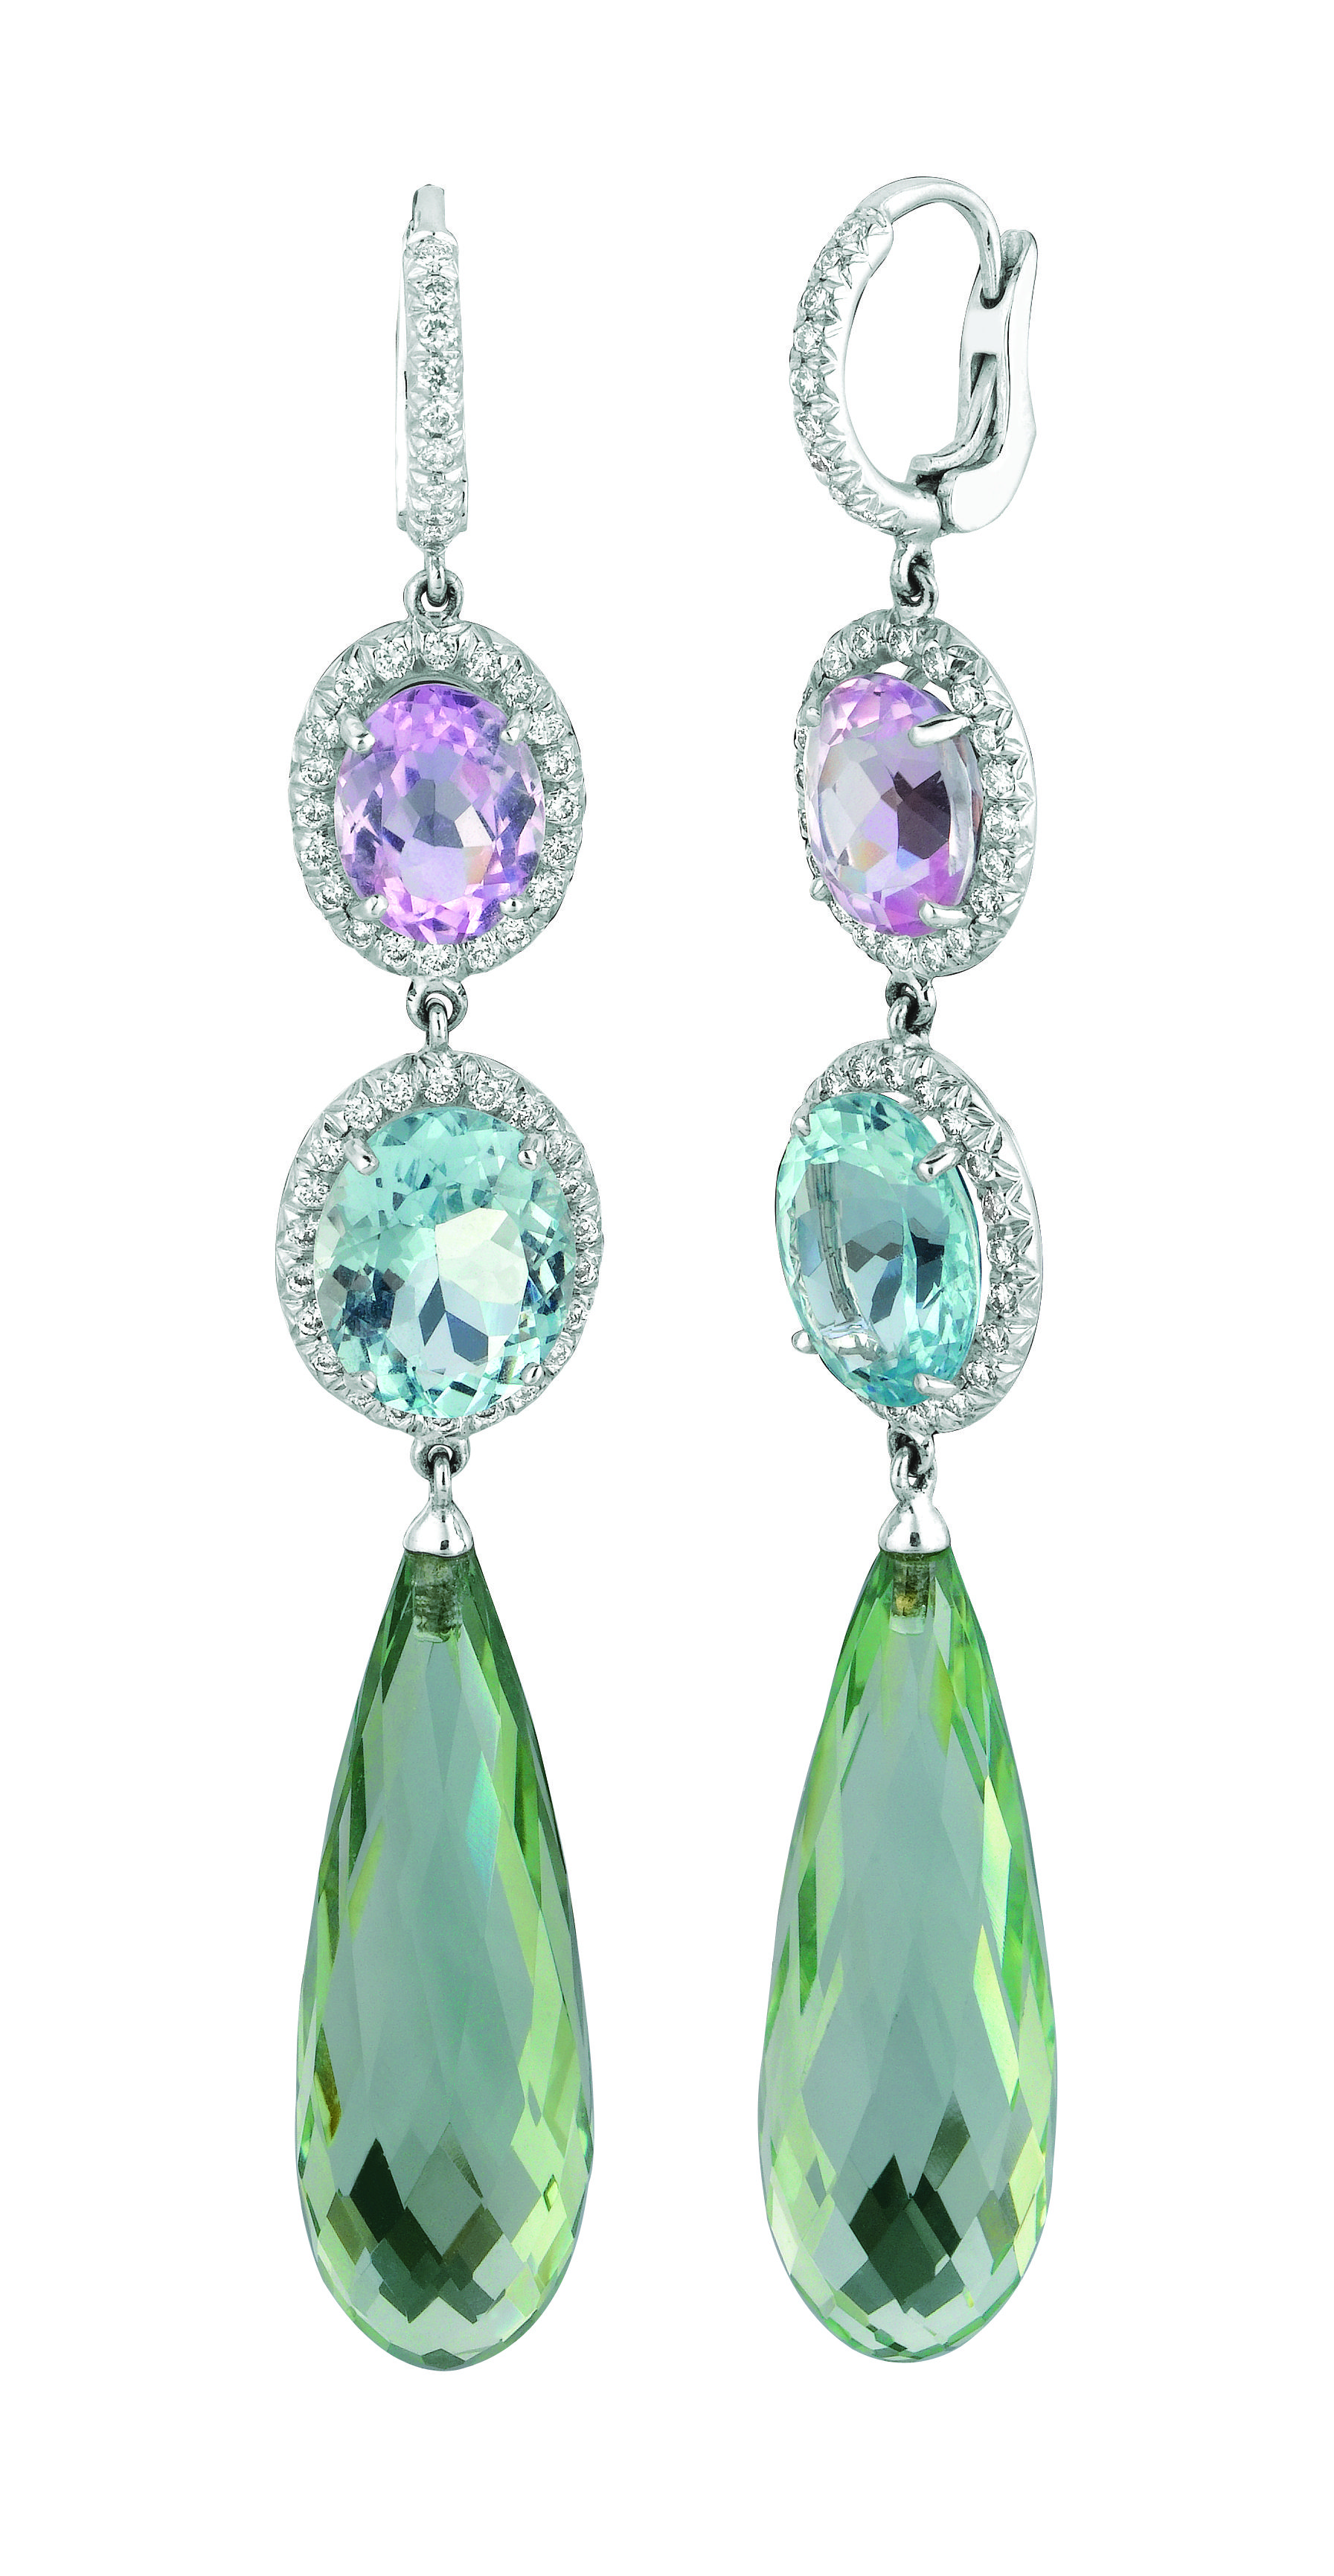 overstock watches kunzite today shipping light jewelry michael earrings free product pink valitutti with sapphire